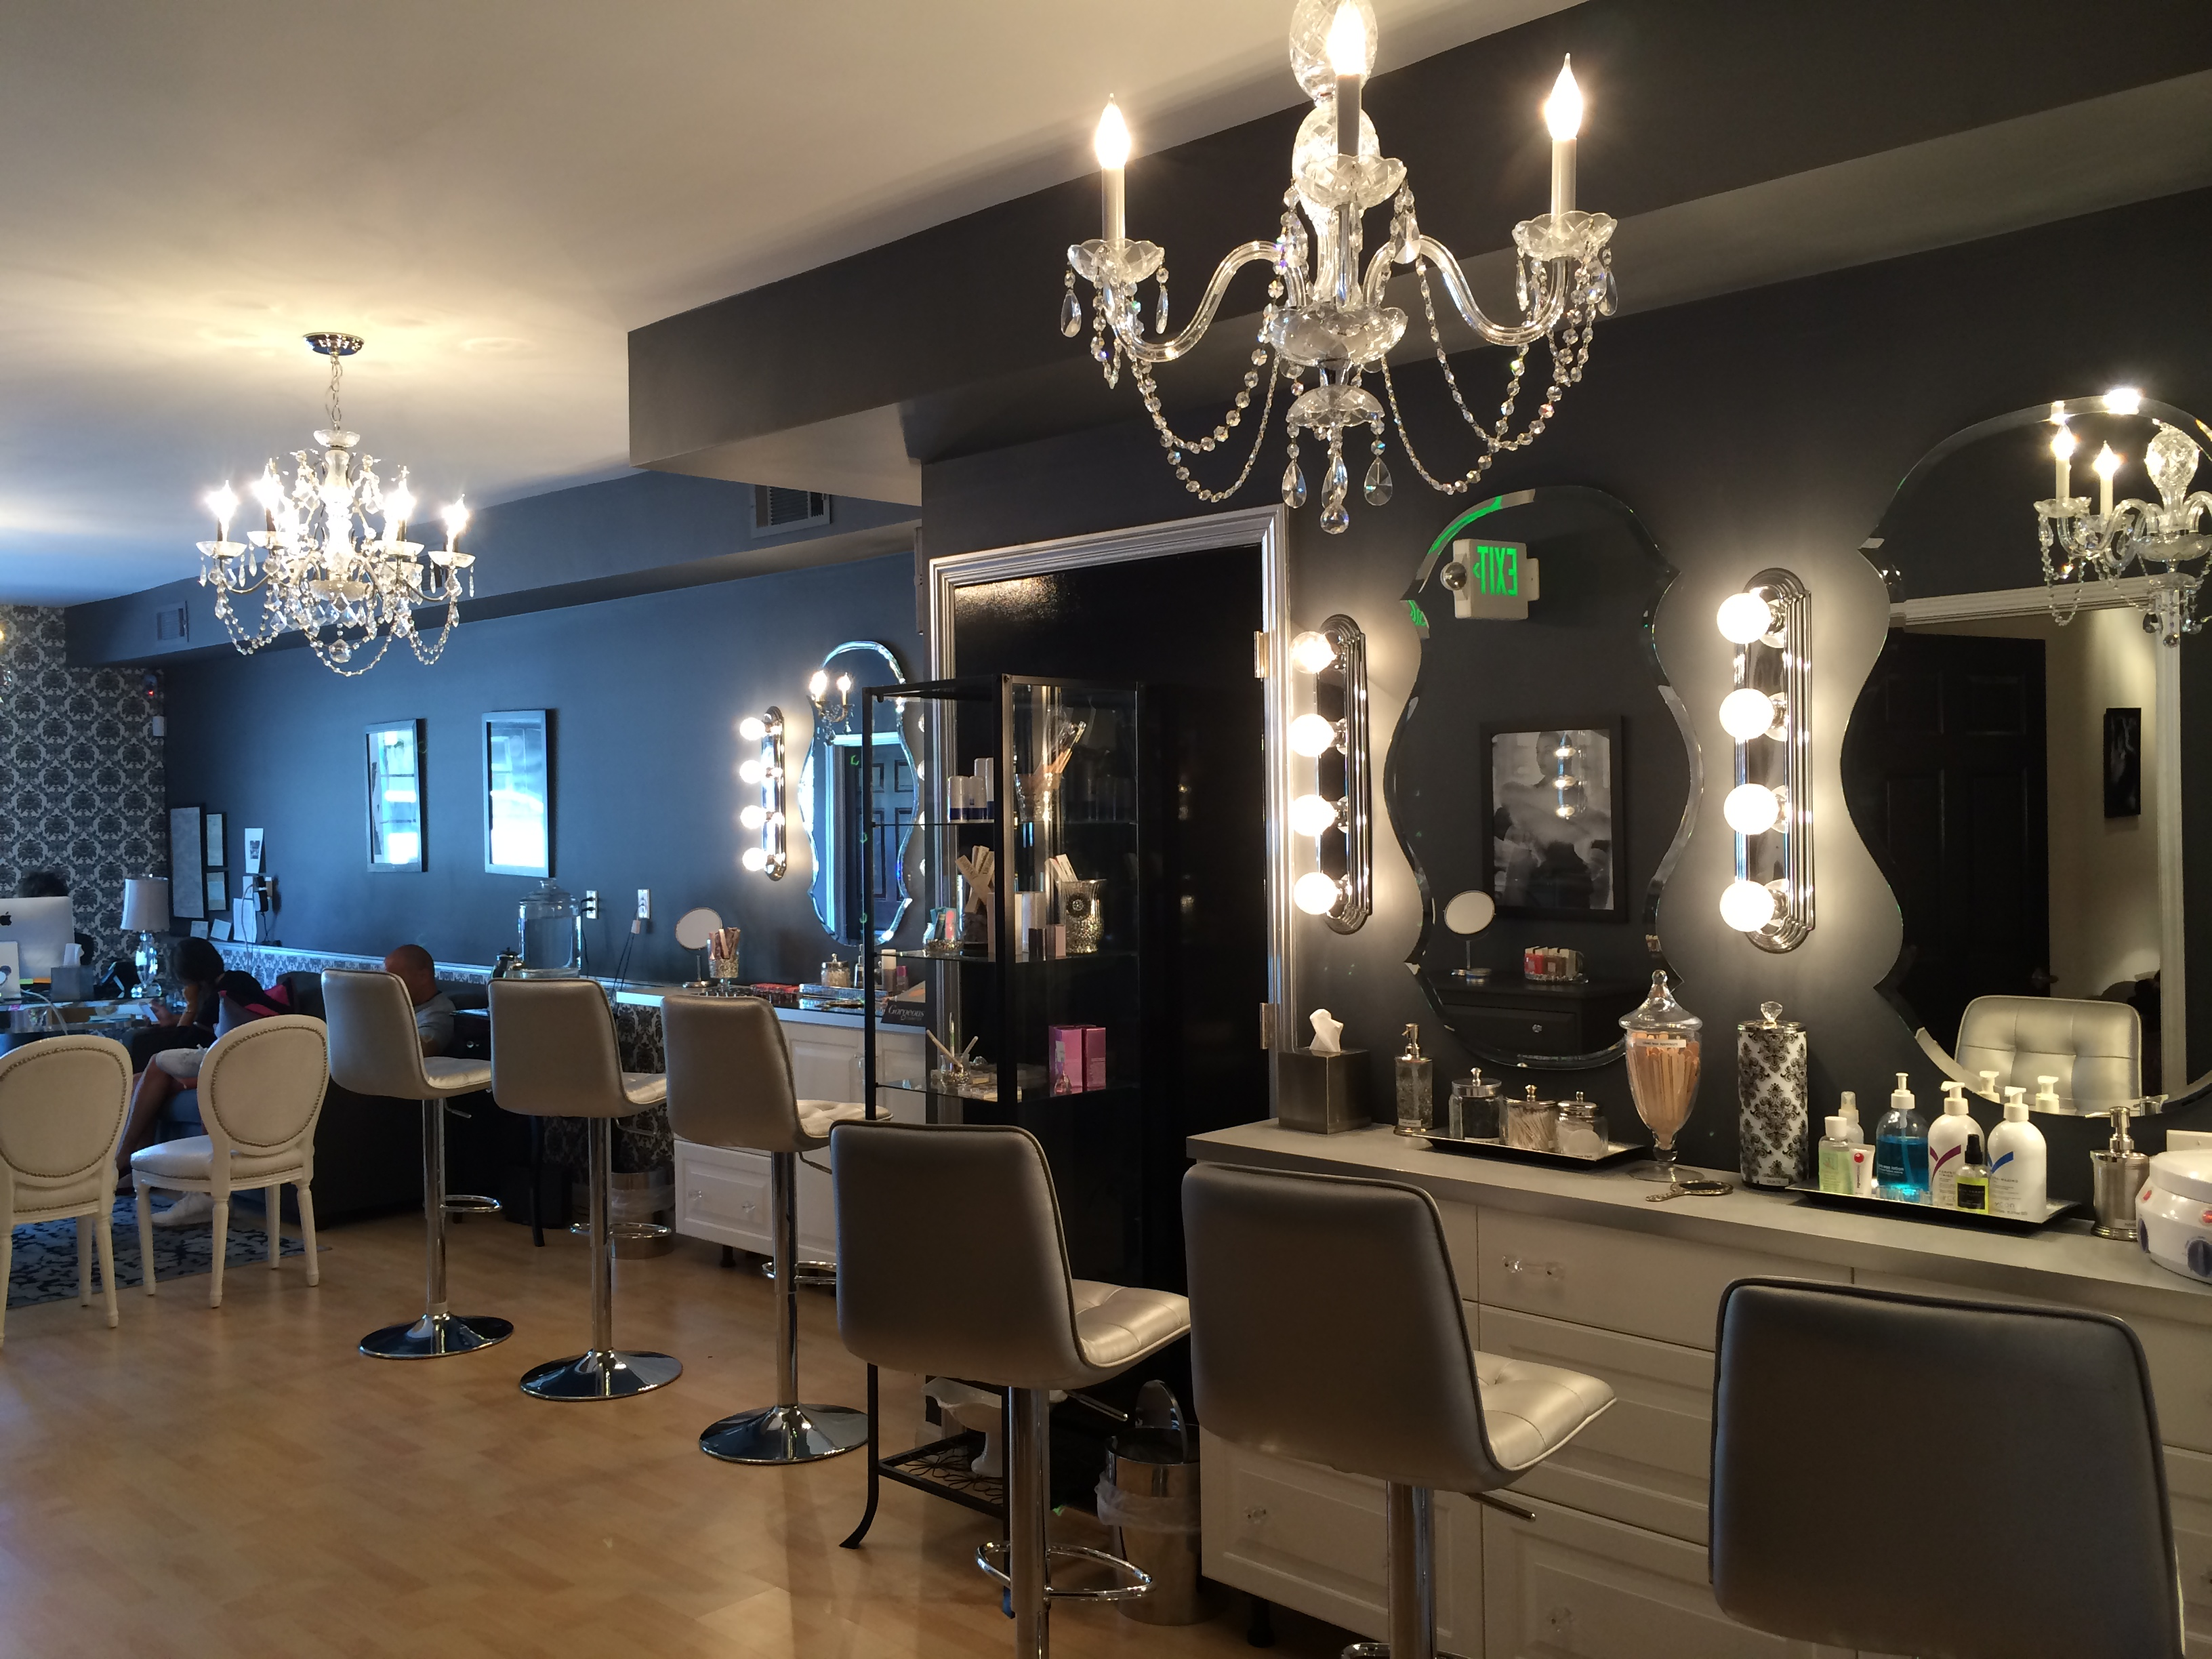 Business For Sale Profitable Eyelashes Salon For Sale